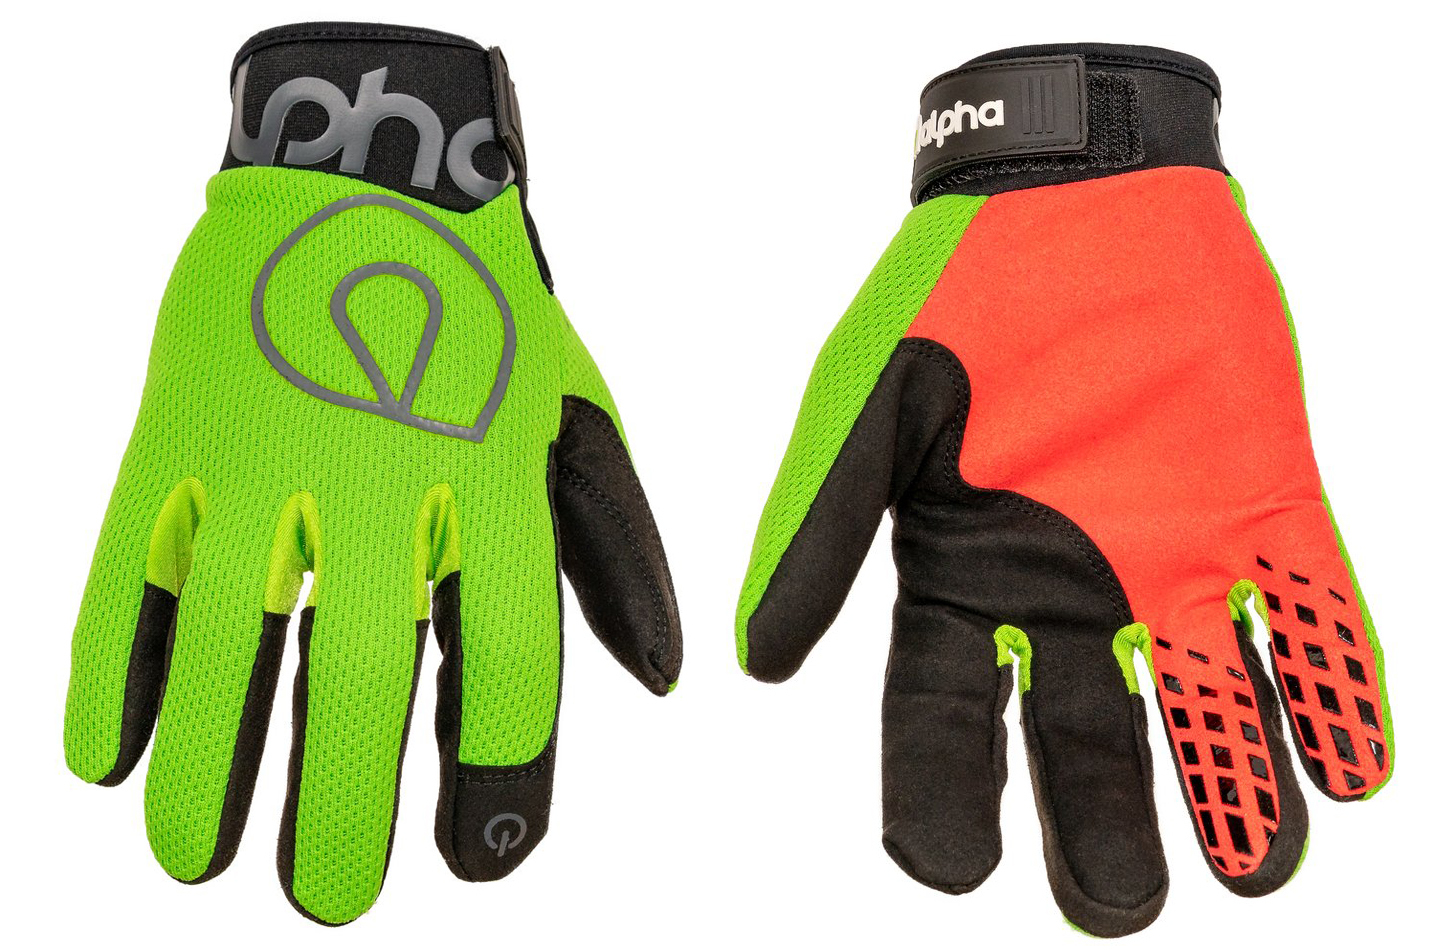 Alpha Gloves AG02-04-XL Gloves, Shop, The Standard, Hook and Loop Closure, Neoprene Cuff, Mesh Top, Touch Screen Capable, Synthetic Leather Palm, Fluorescent Green, X-Large, Pair